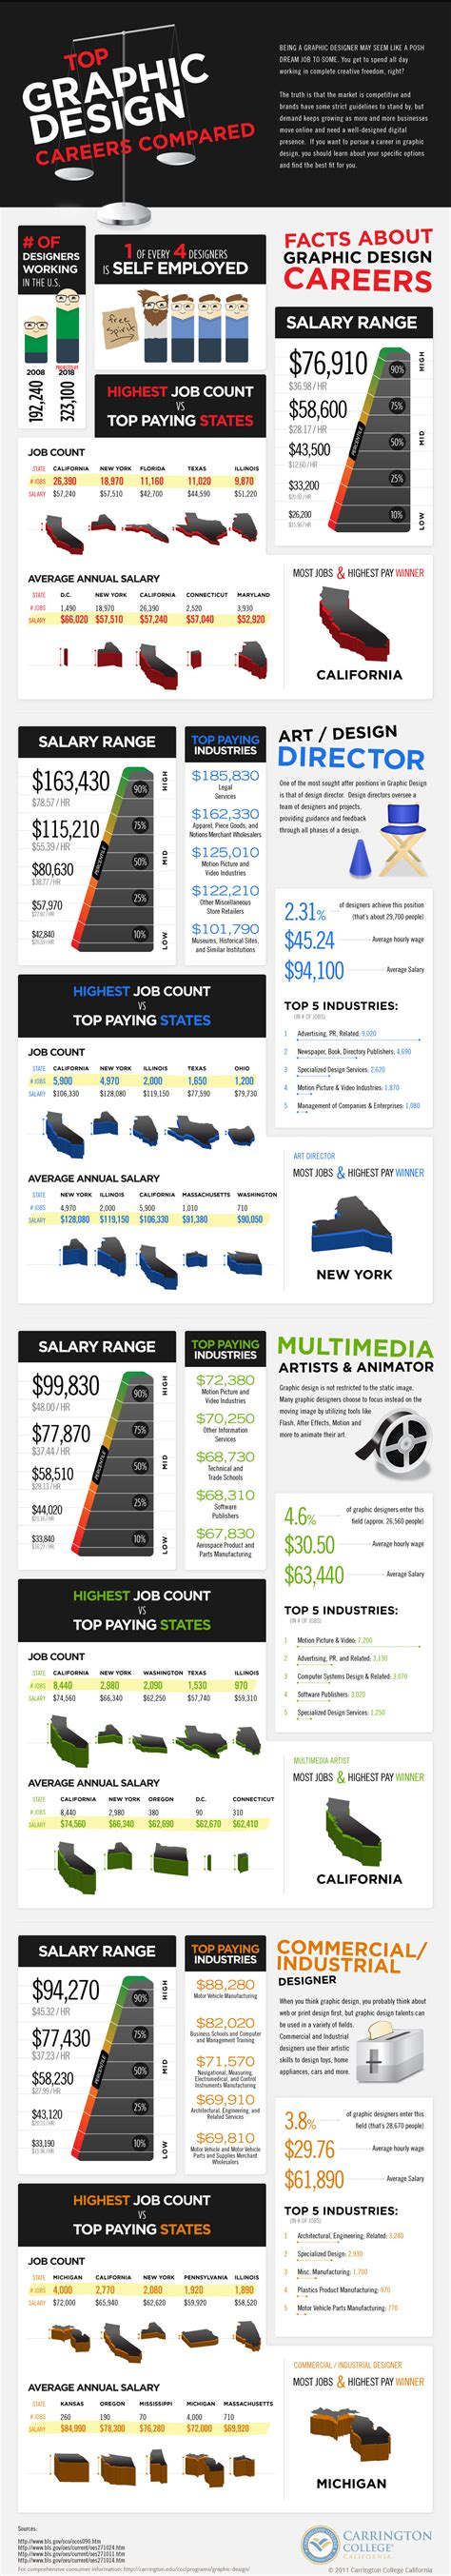 graphic design google jobs how much do graphic designers make